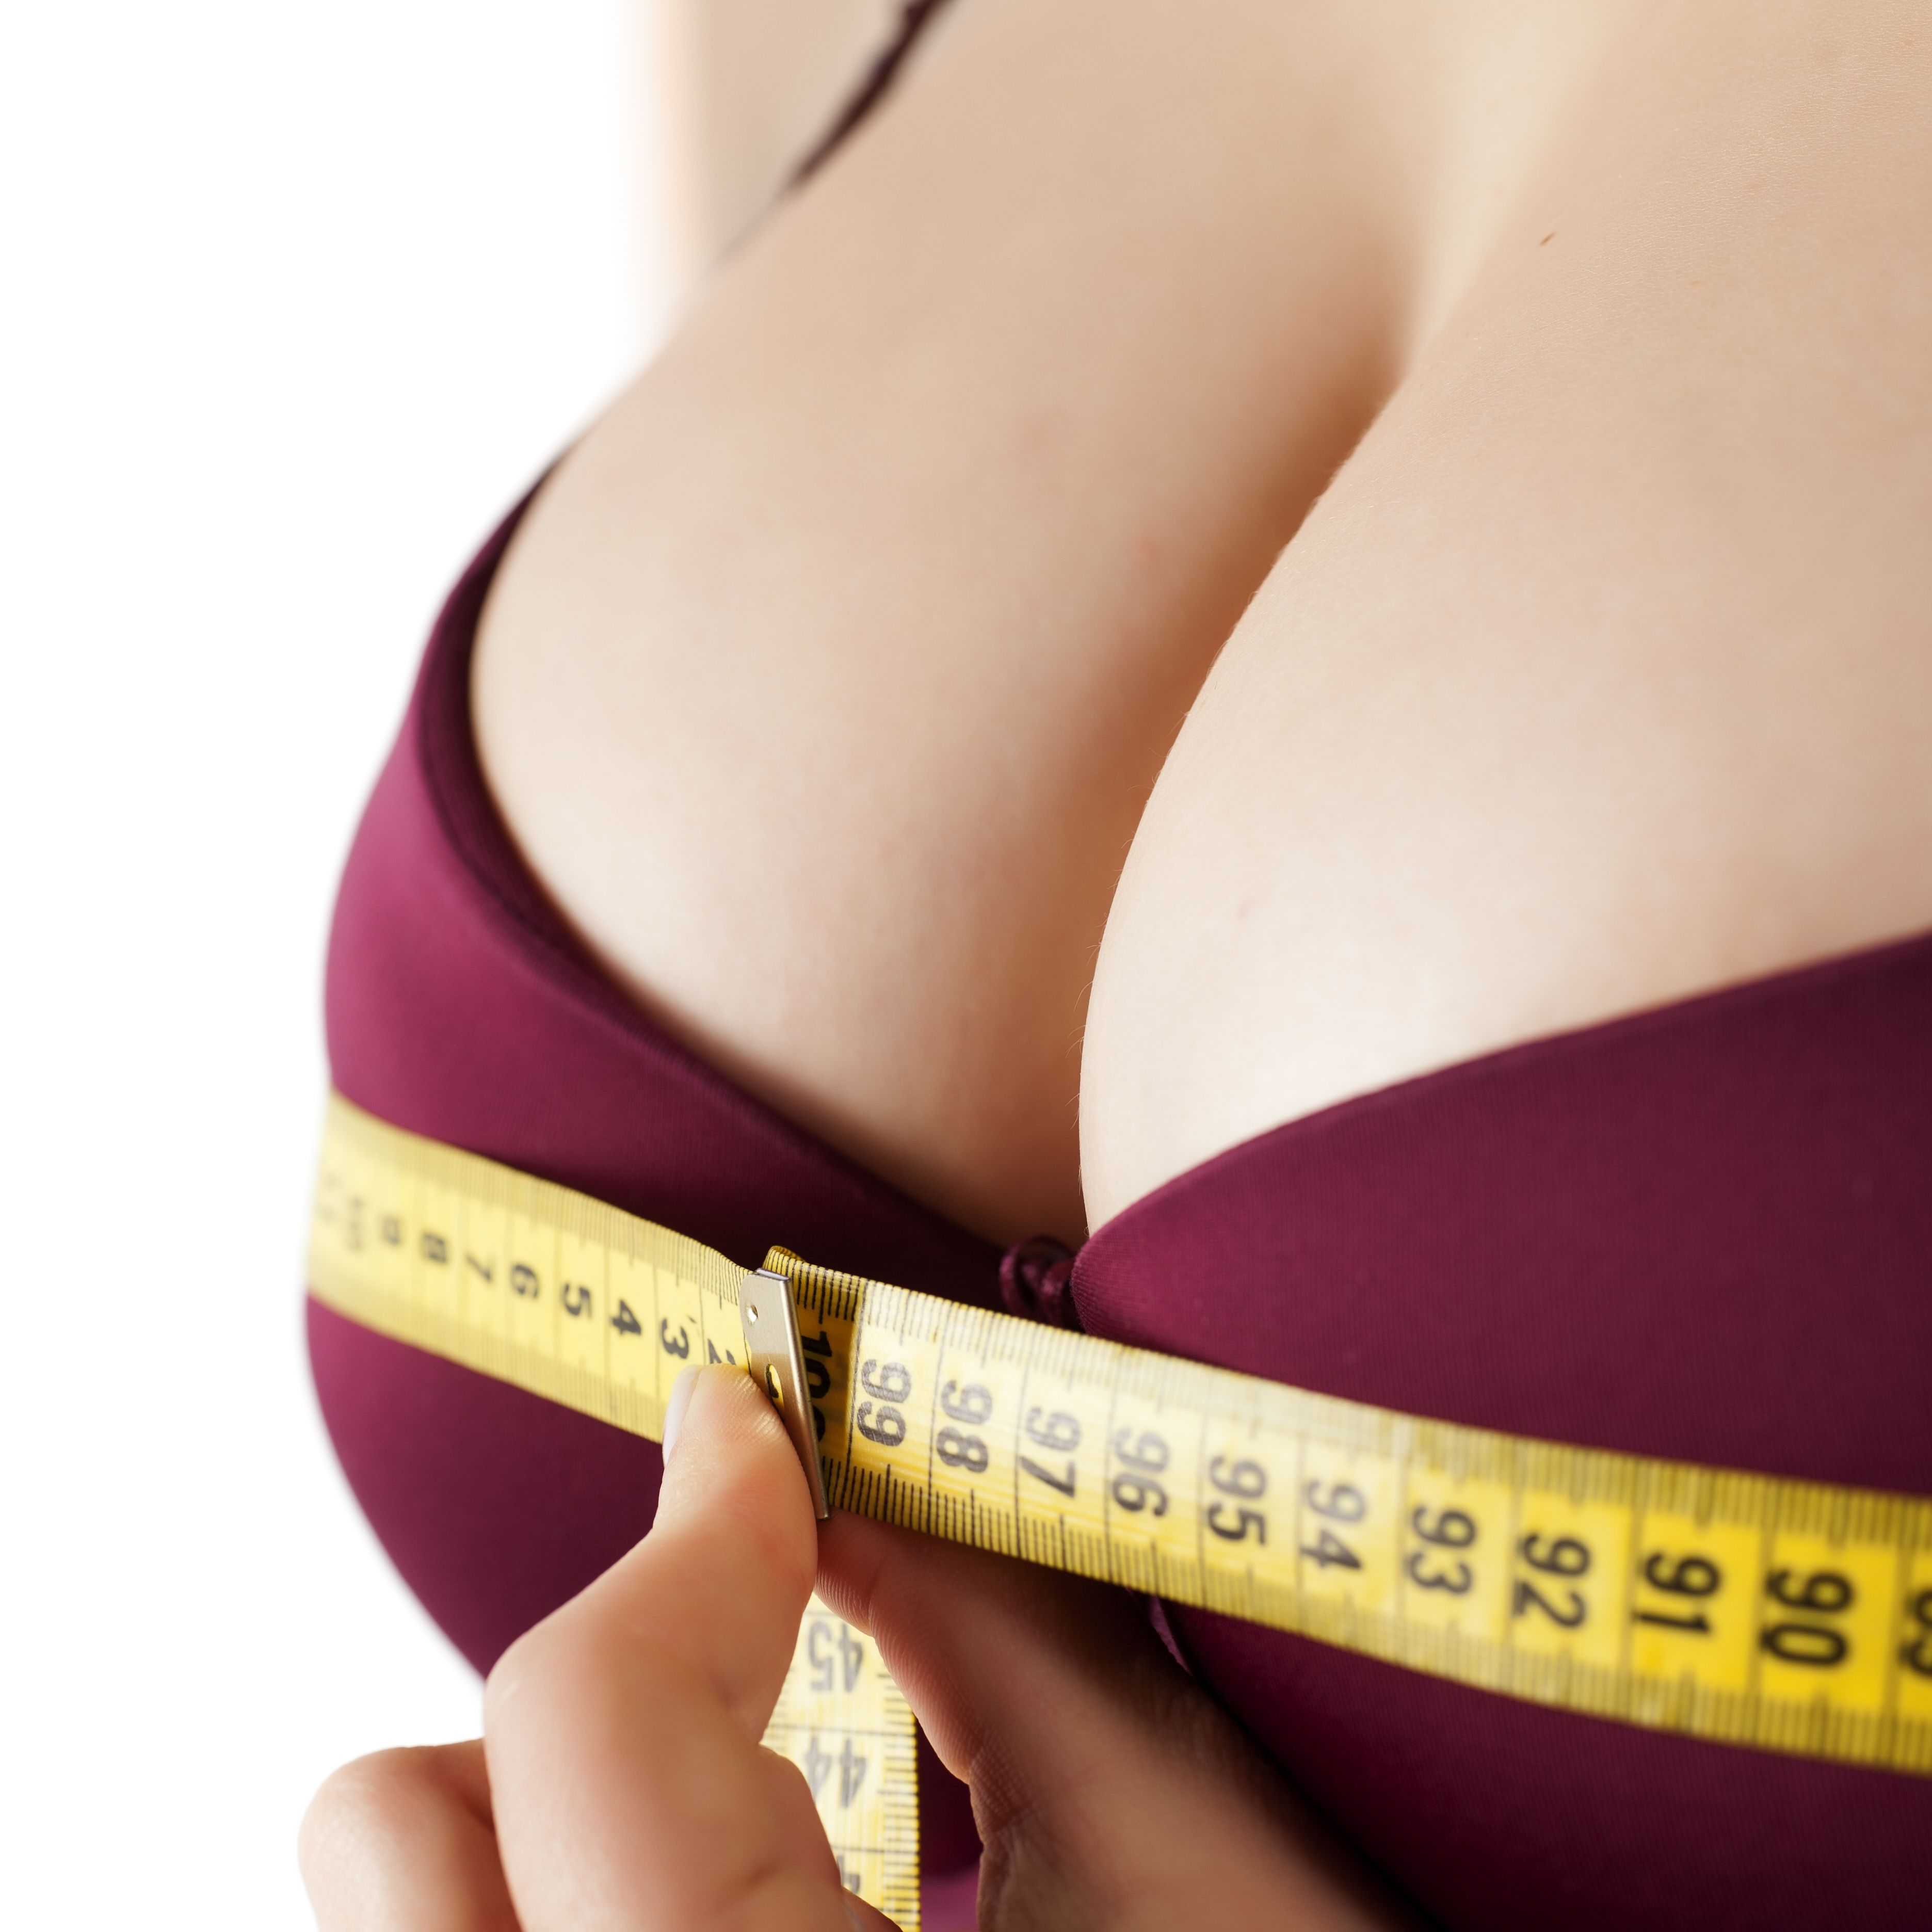 fb3beabcbfa What Your Bra Size Really Means